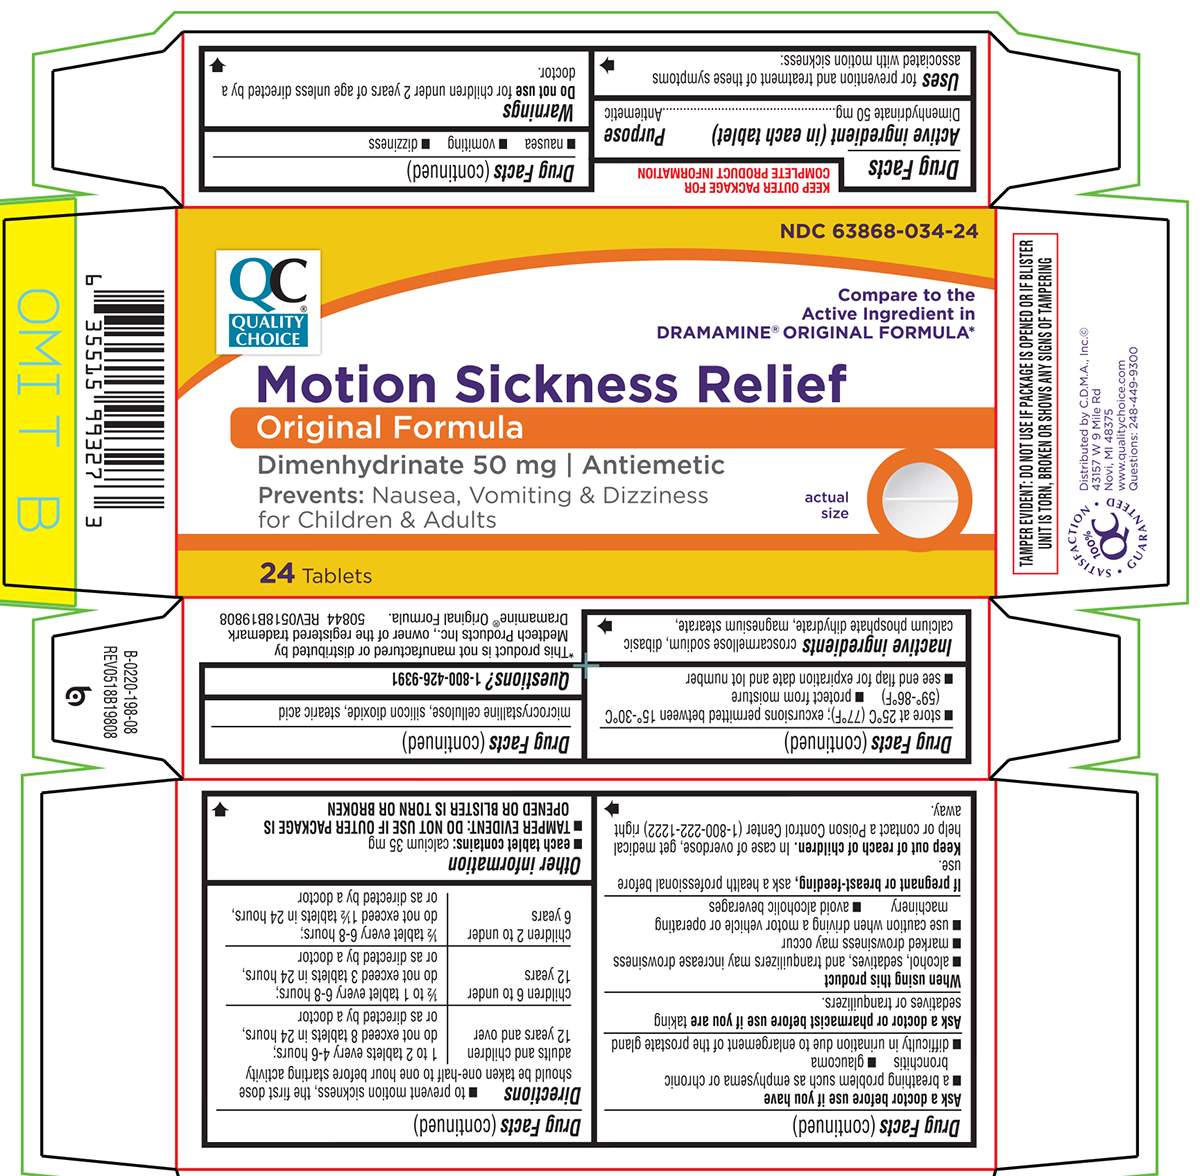 Motion Sickness Relief (Dimenhydrinate) Tablet [Chain Drug Marketing Association Inc]